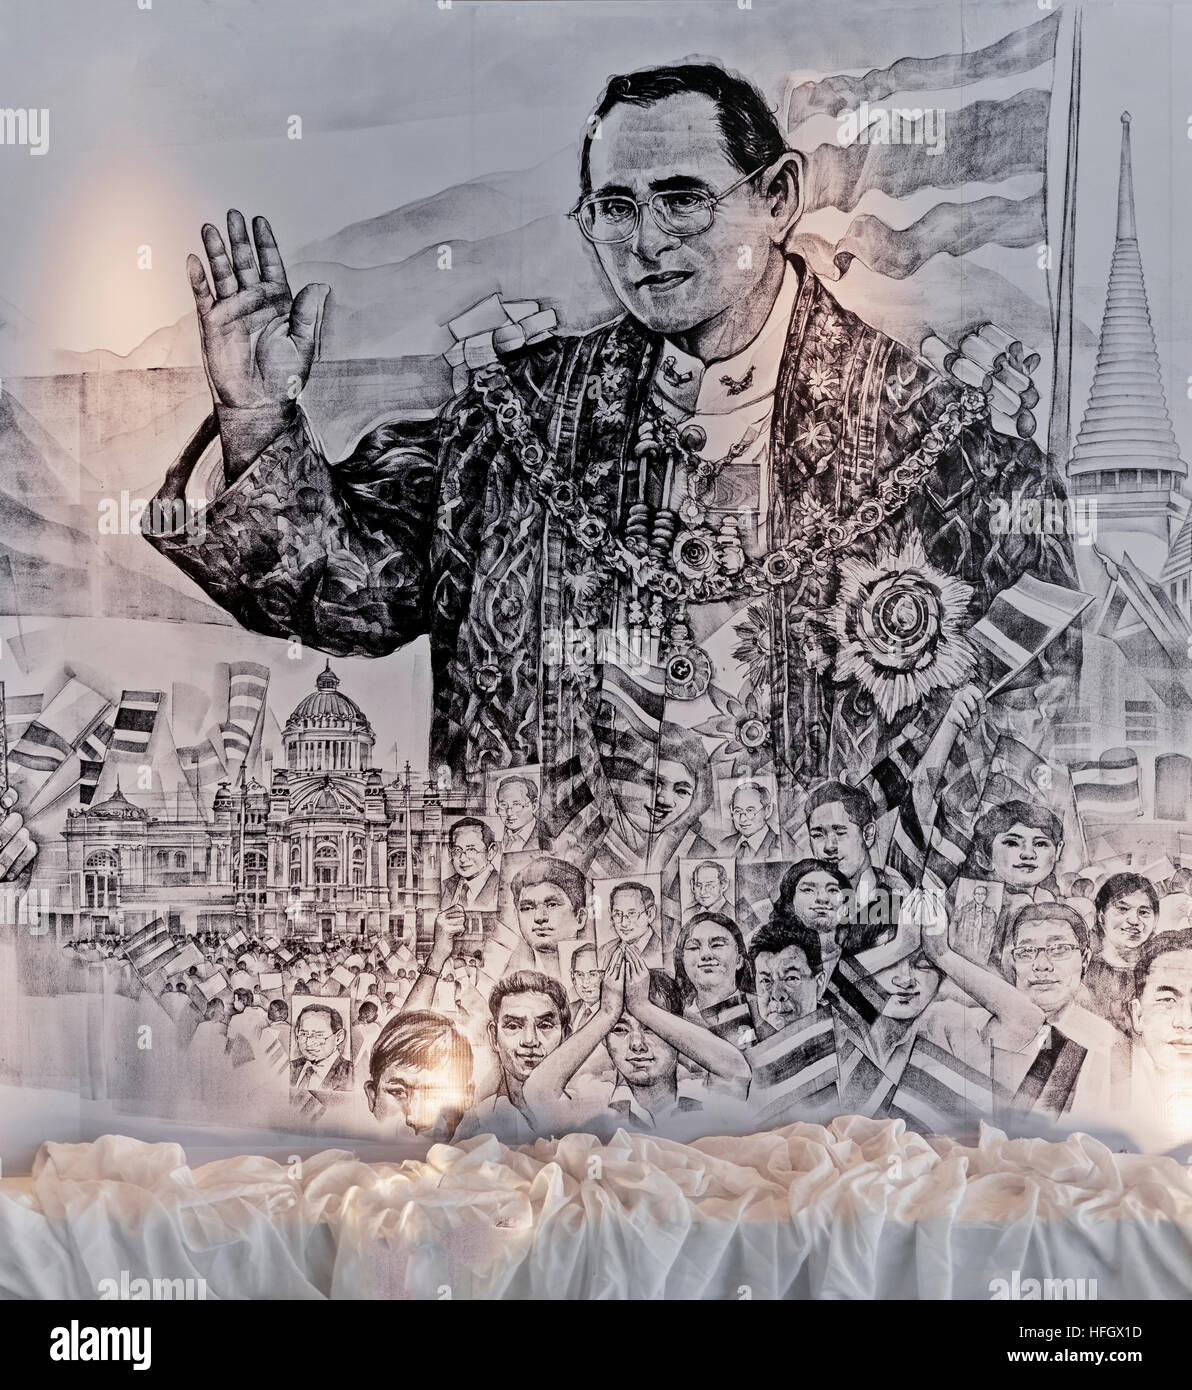 Illustrated sketch of the life and family of the late revered Thailand King Bhumibol Adulyadej Rama 1X. Black and - Stock Image